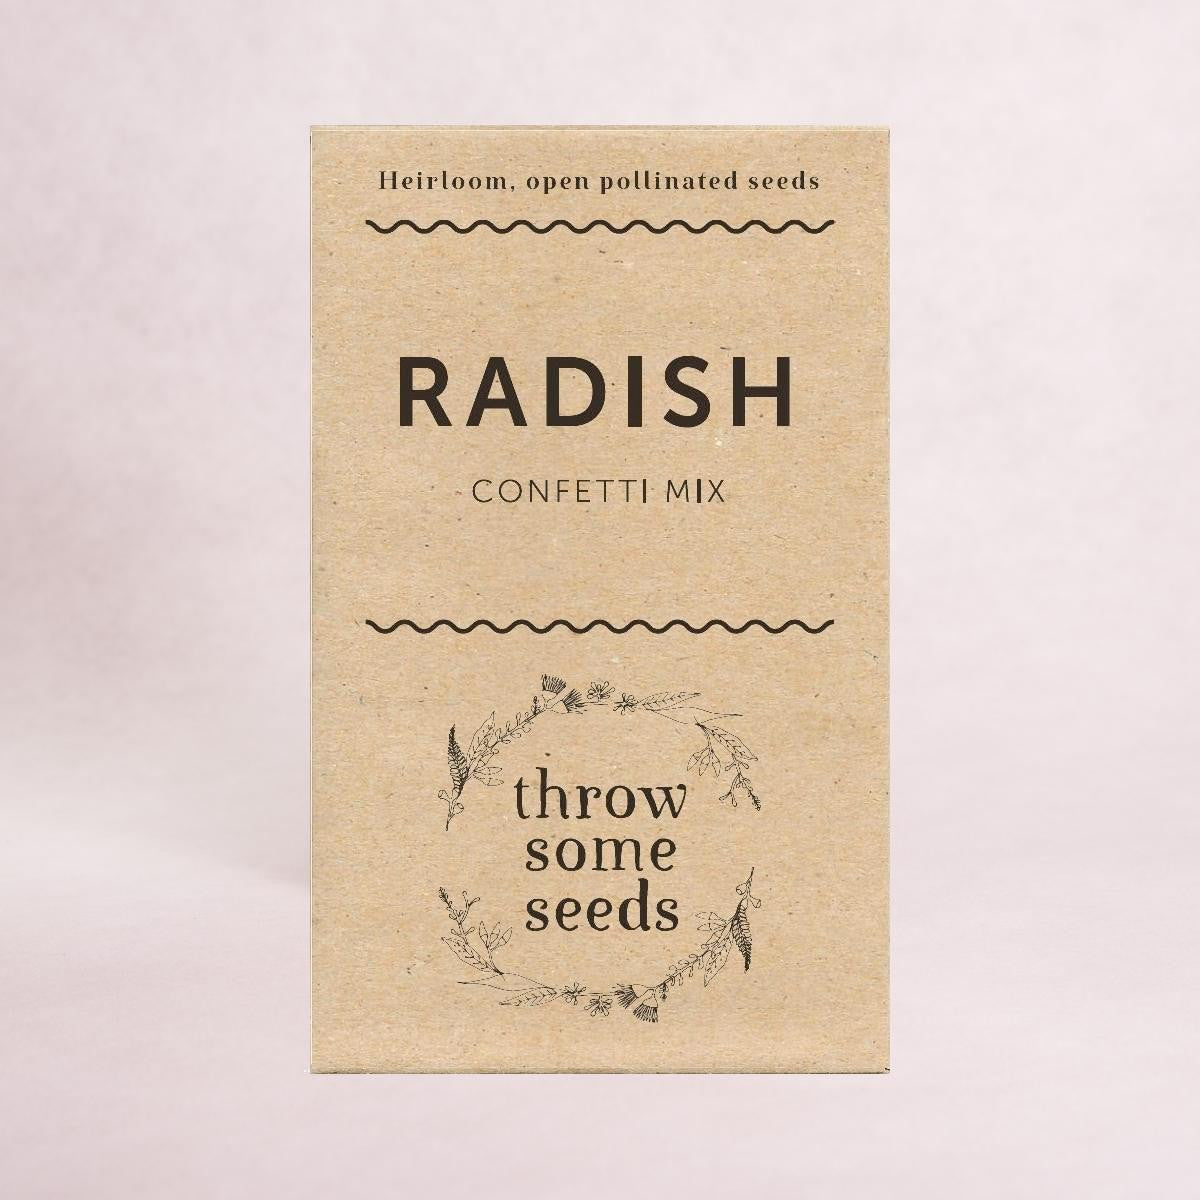 Radish (Confetti Mix) Seeds - Seeds - Throw Some Seeds - Australian gardening gifts and eco products online!